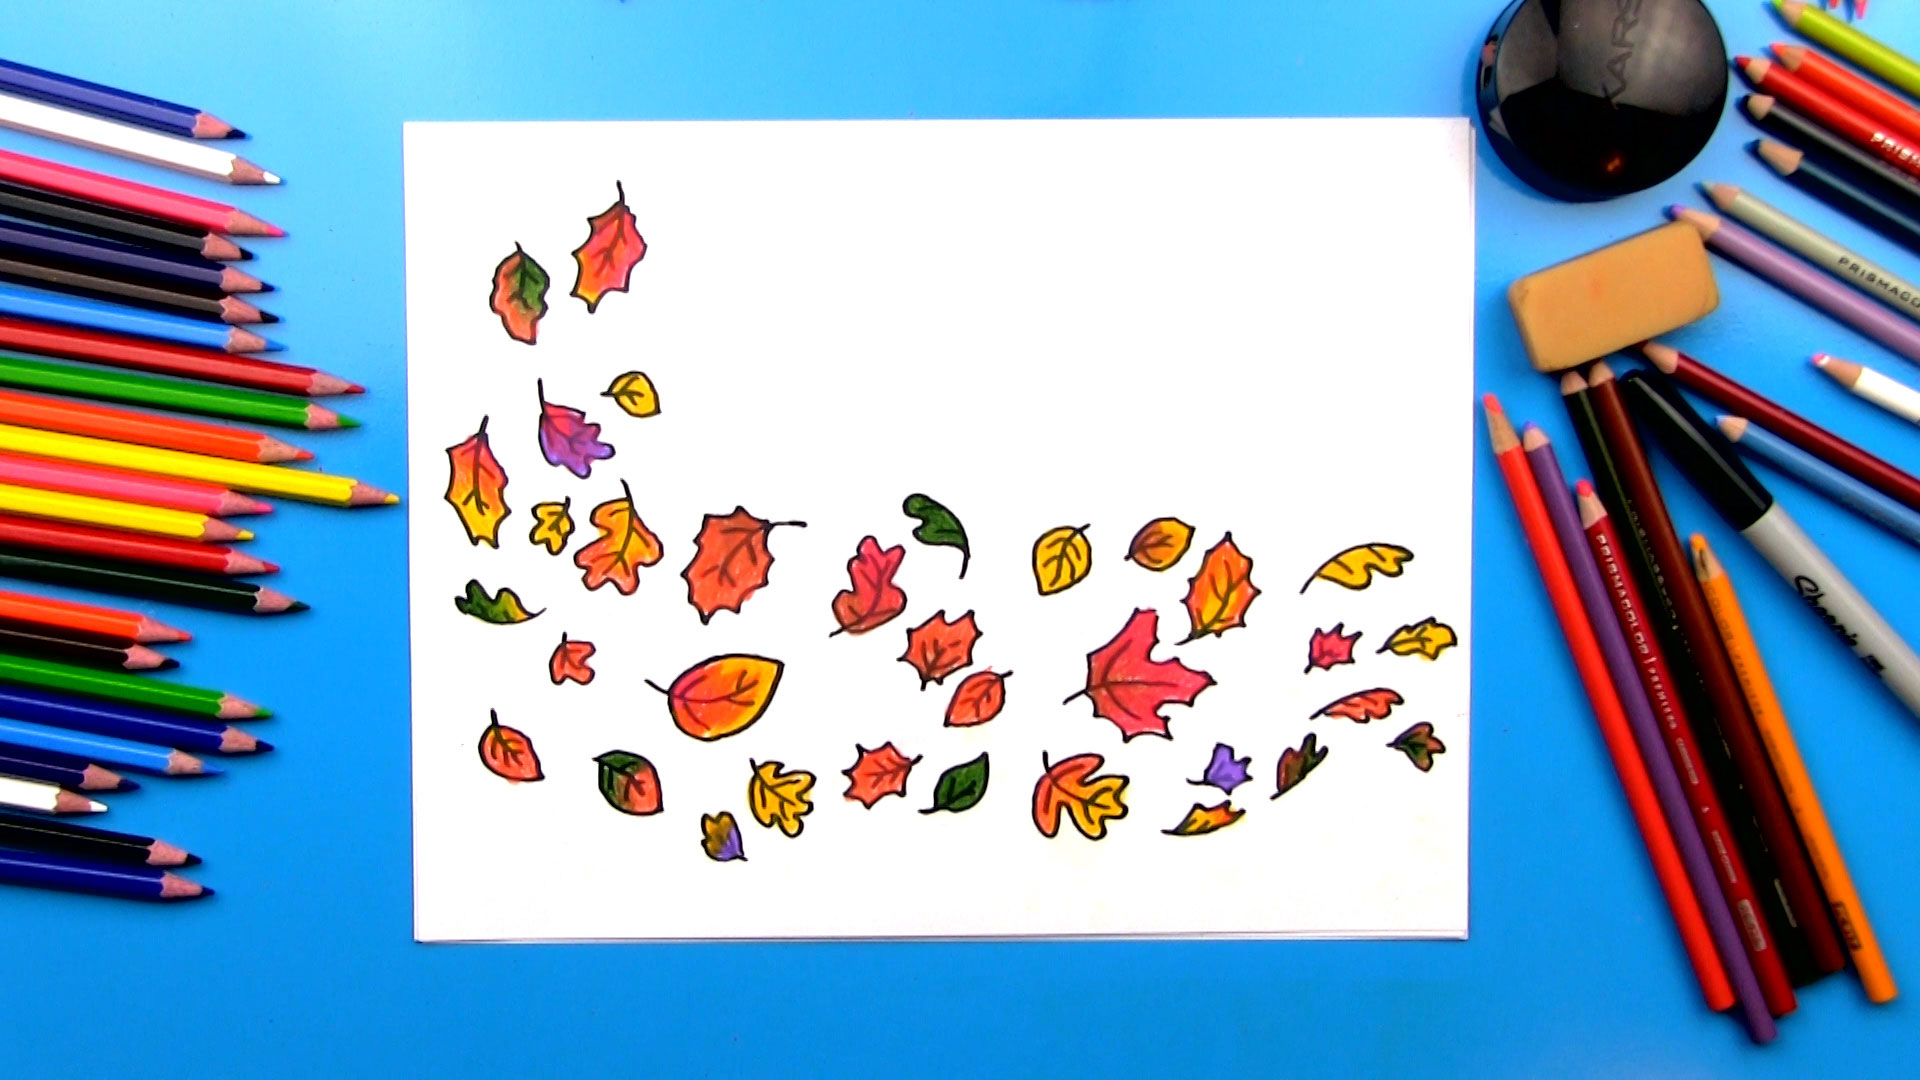 How To Draw Leaves Blowing In The Wind Art For Kids Hub